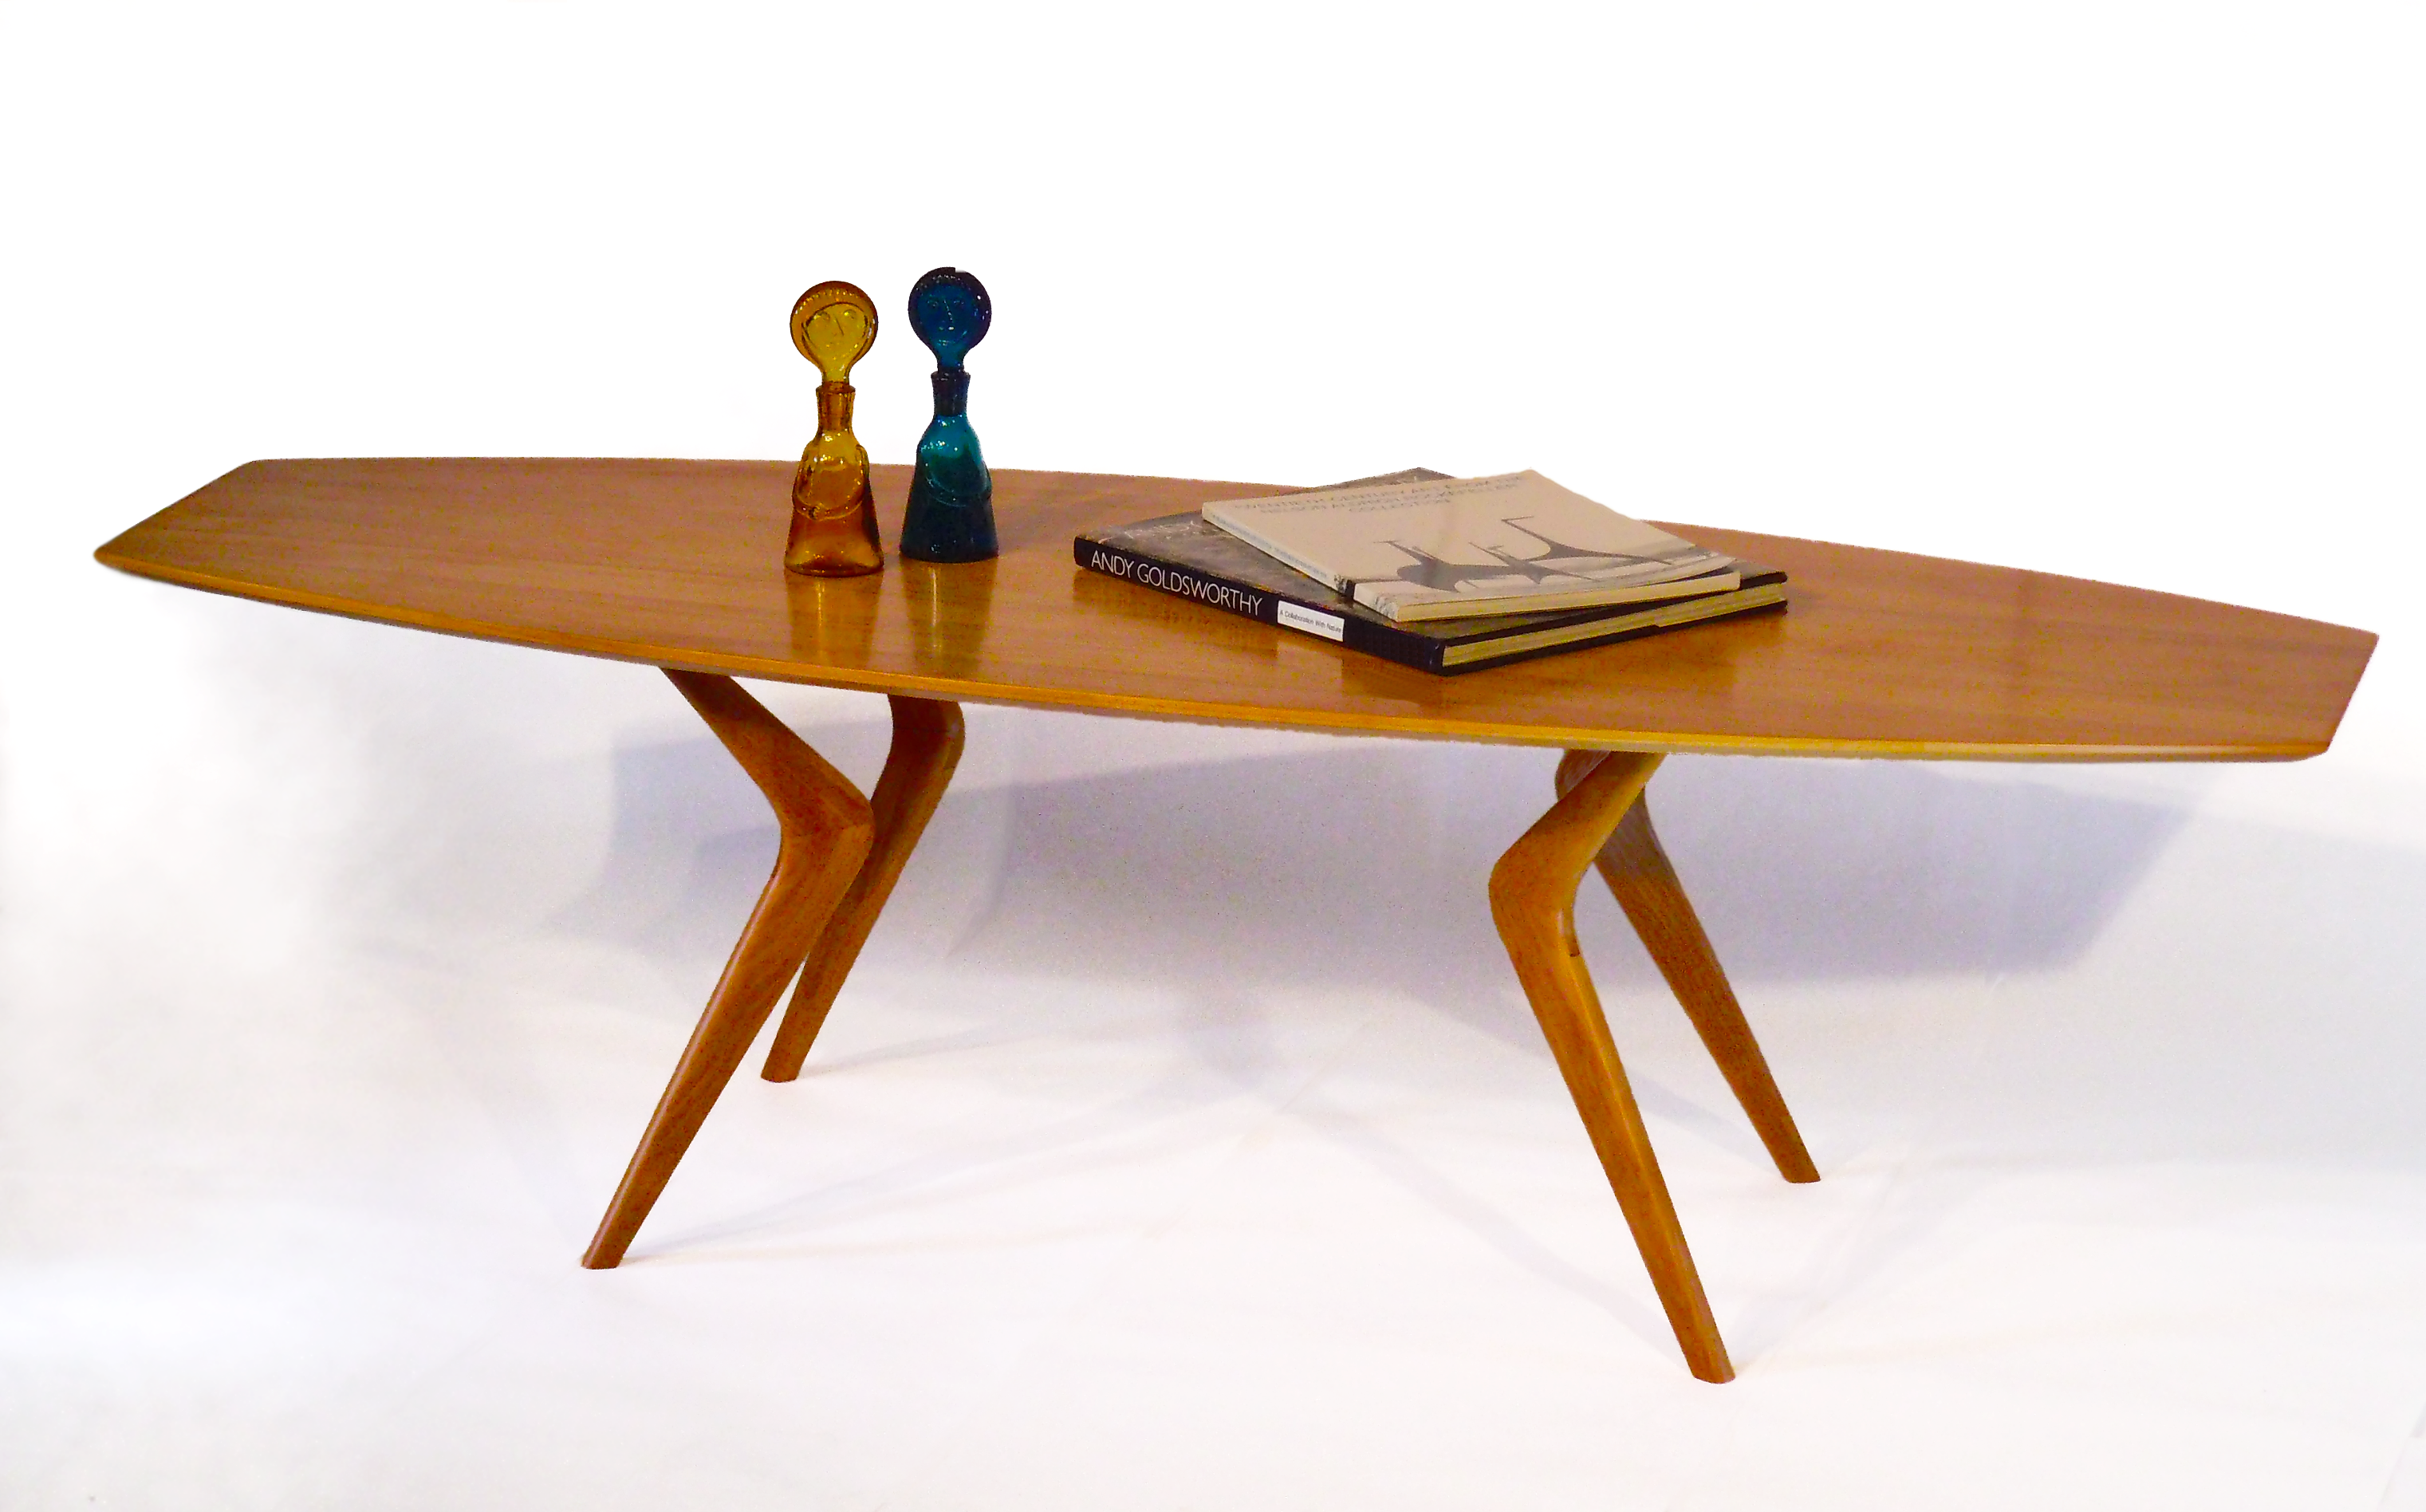 Buy a Hand Made Modern Coffee Table Boomerang Leg Design With